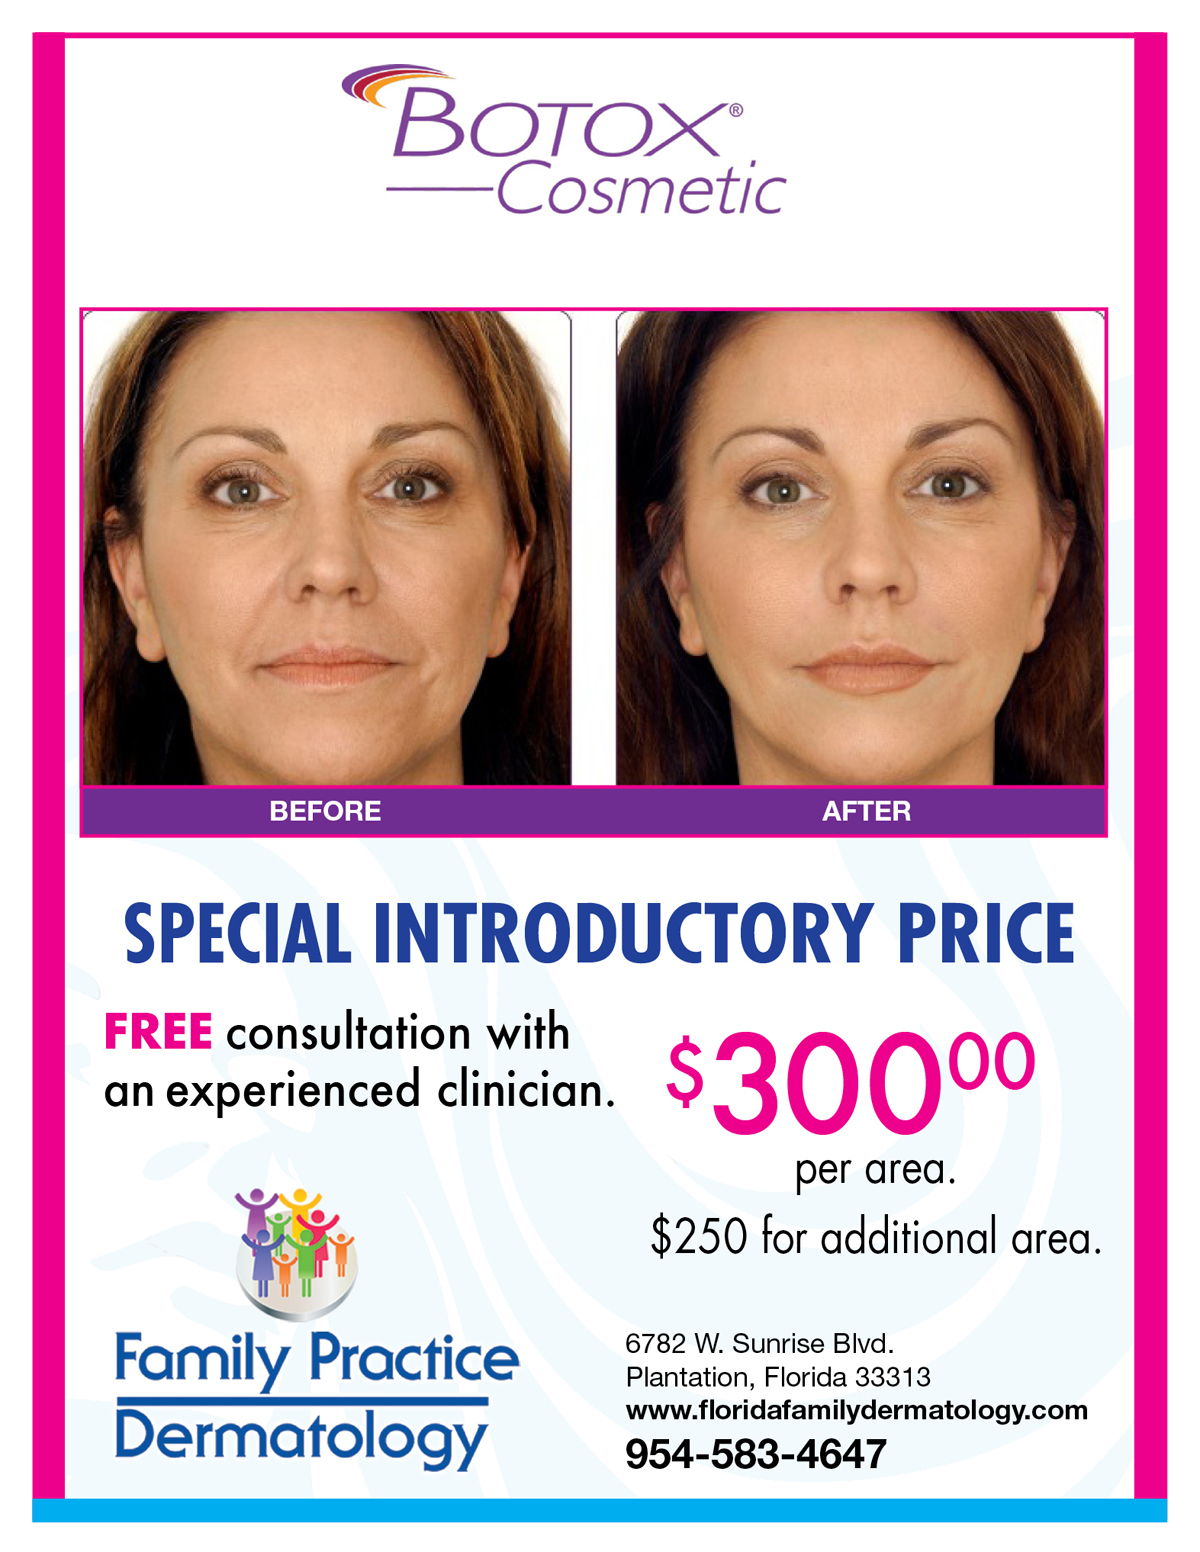 Florida Family Dermatology Specials In Plantation